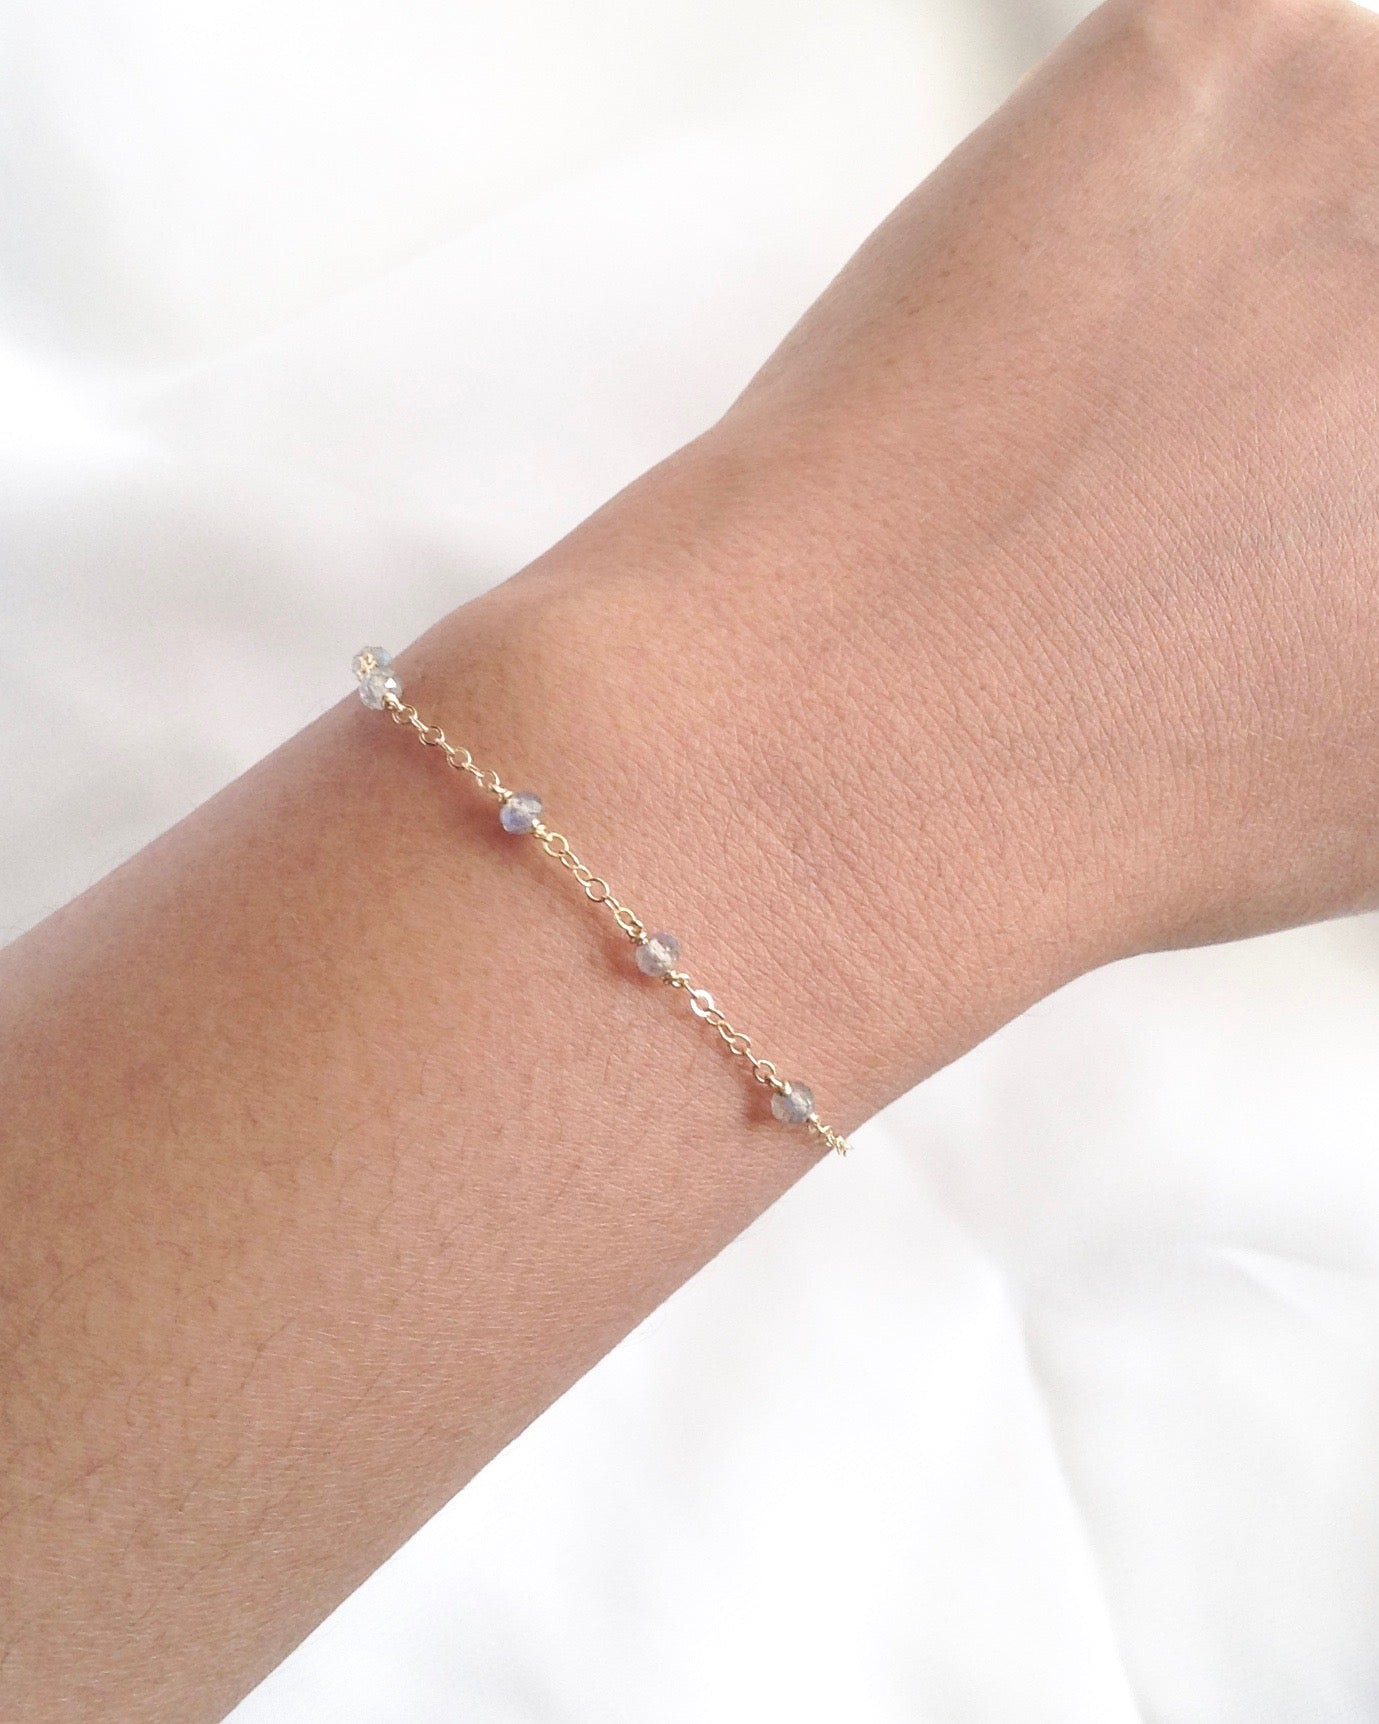 Labradorite Delicate Gemstone Bracelet | Simple Gemstone Bracelet | IB Jewelry